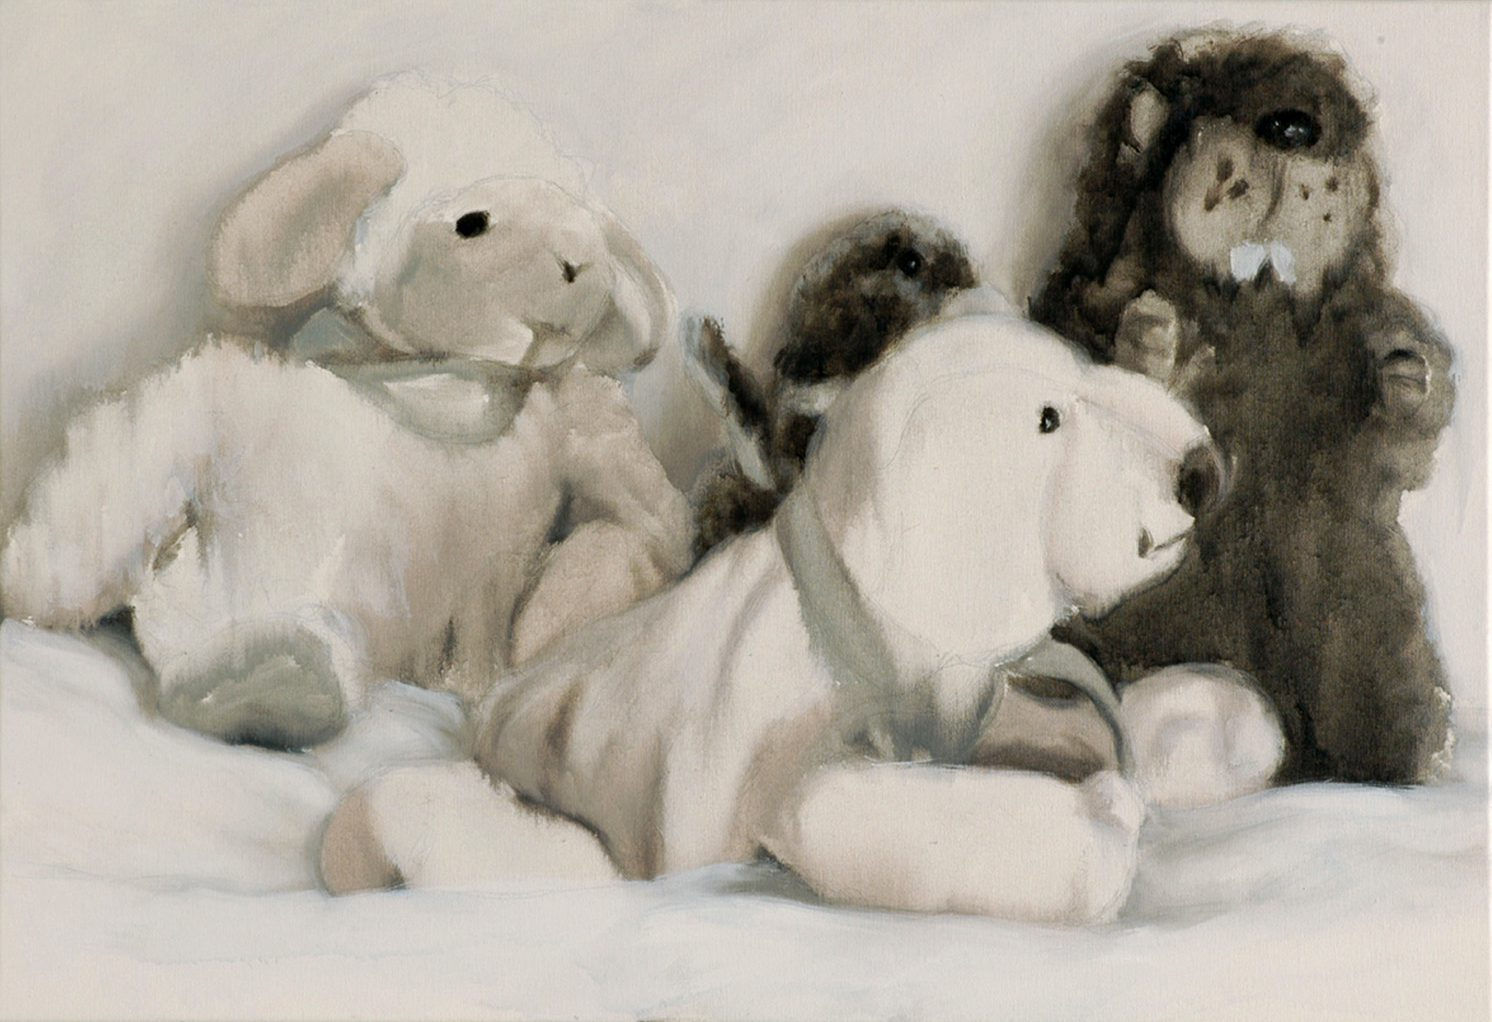 Martina Büttner: Painting, family #8, 2007